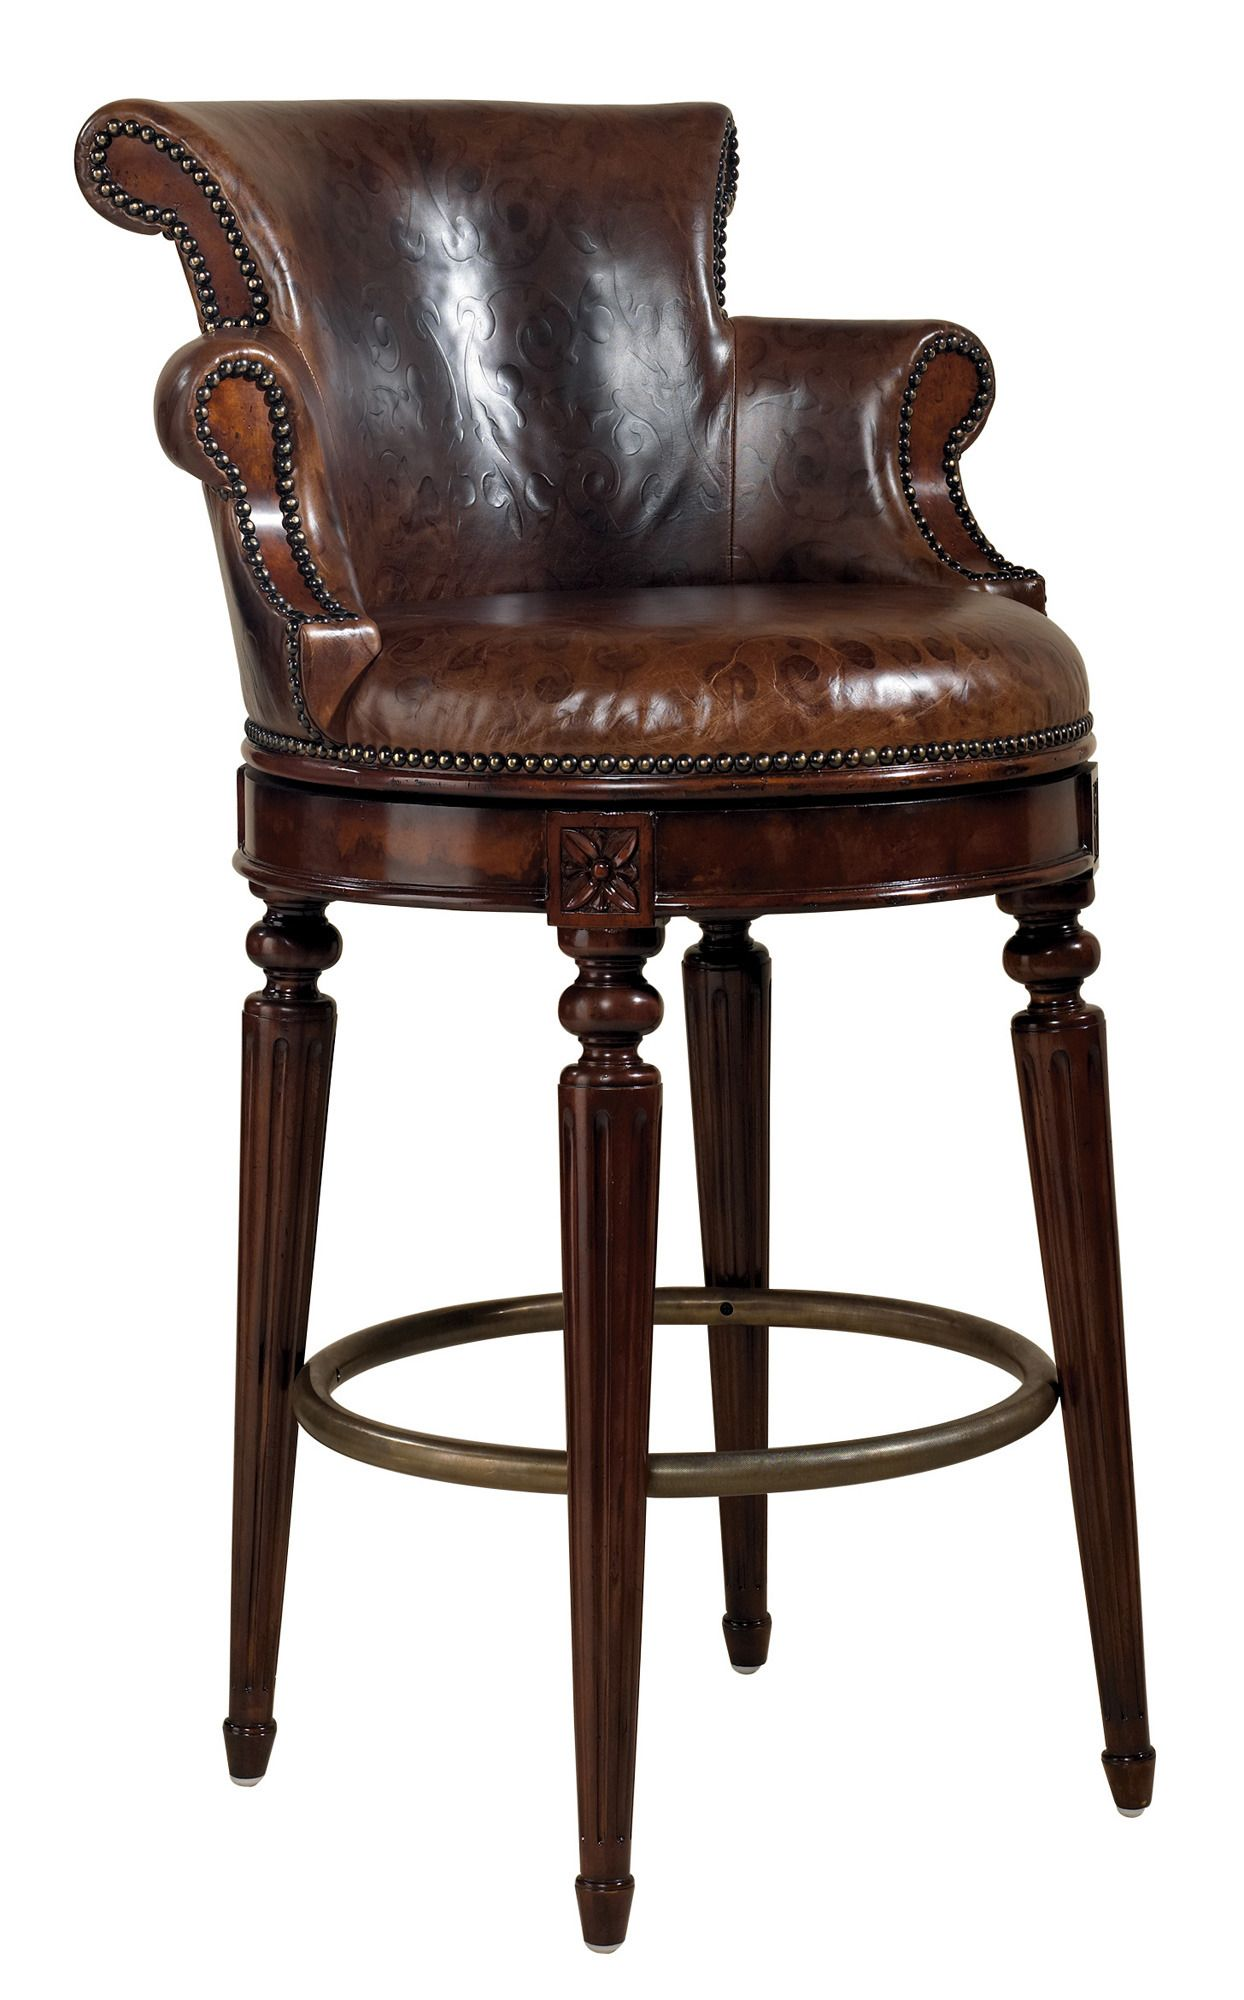 Counter Stool in Mahogany by MaitlandSmith Home Gallery